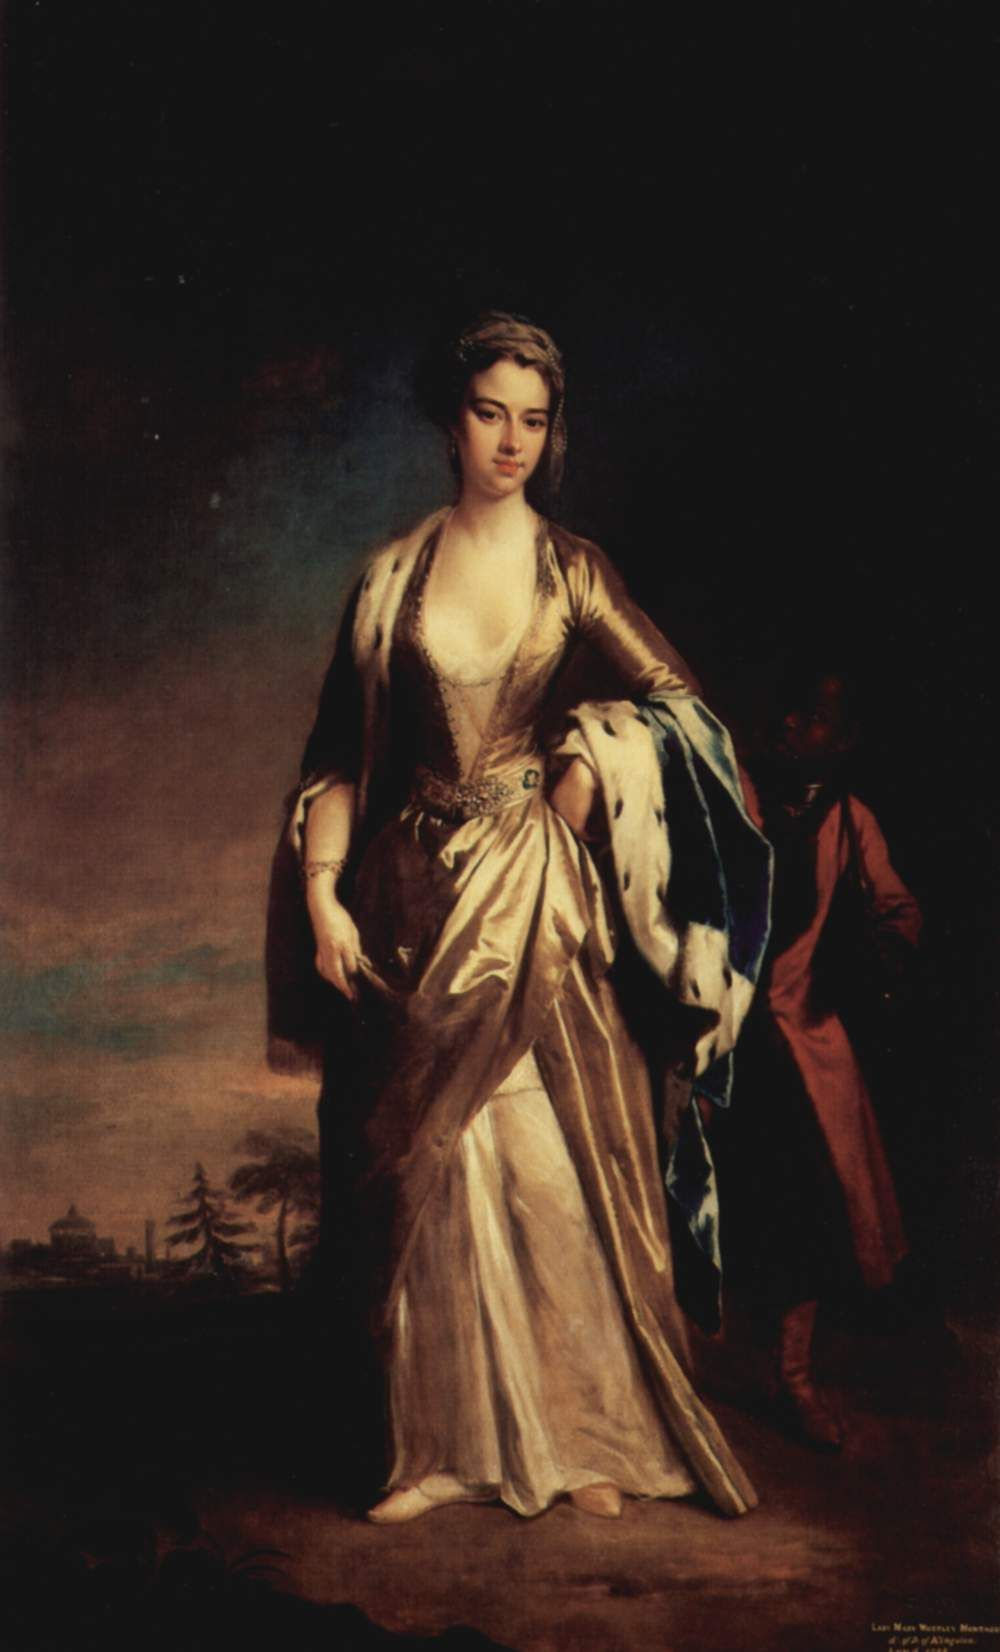 An oil painting of Lady Mary Wortley Montagu by Jonathon Richardson.